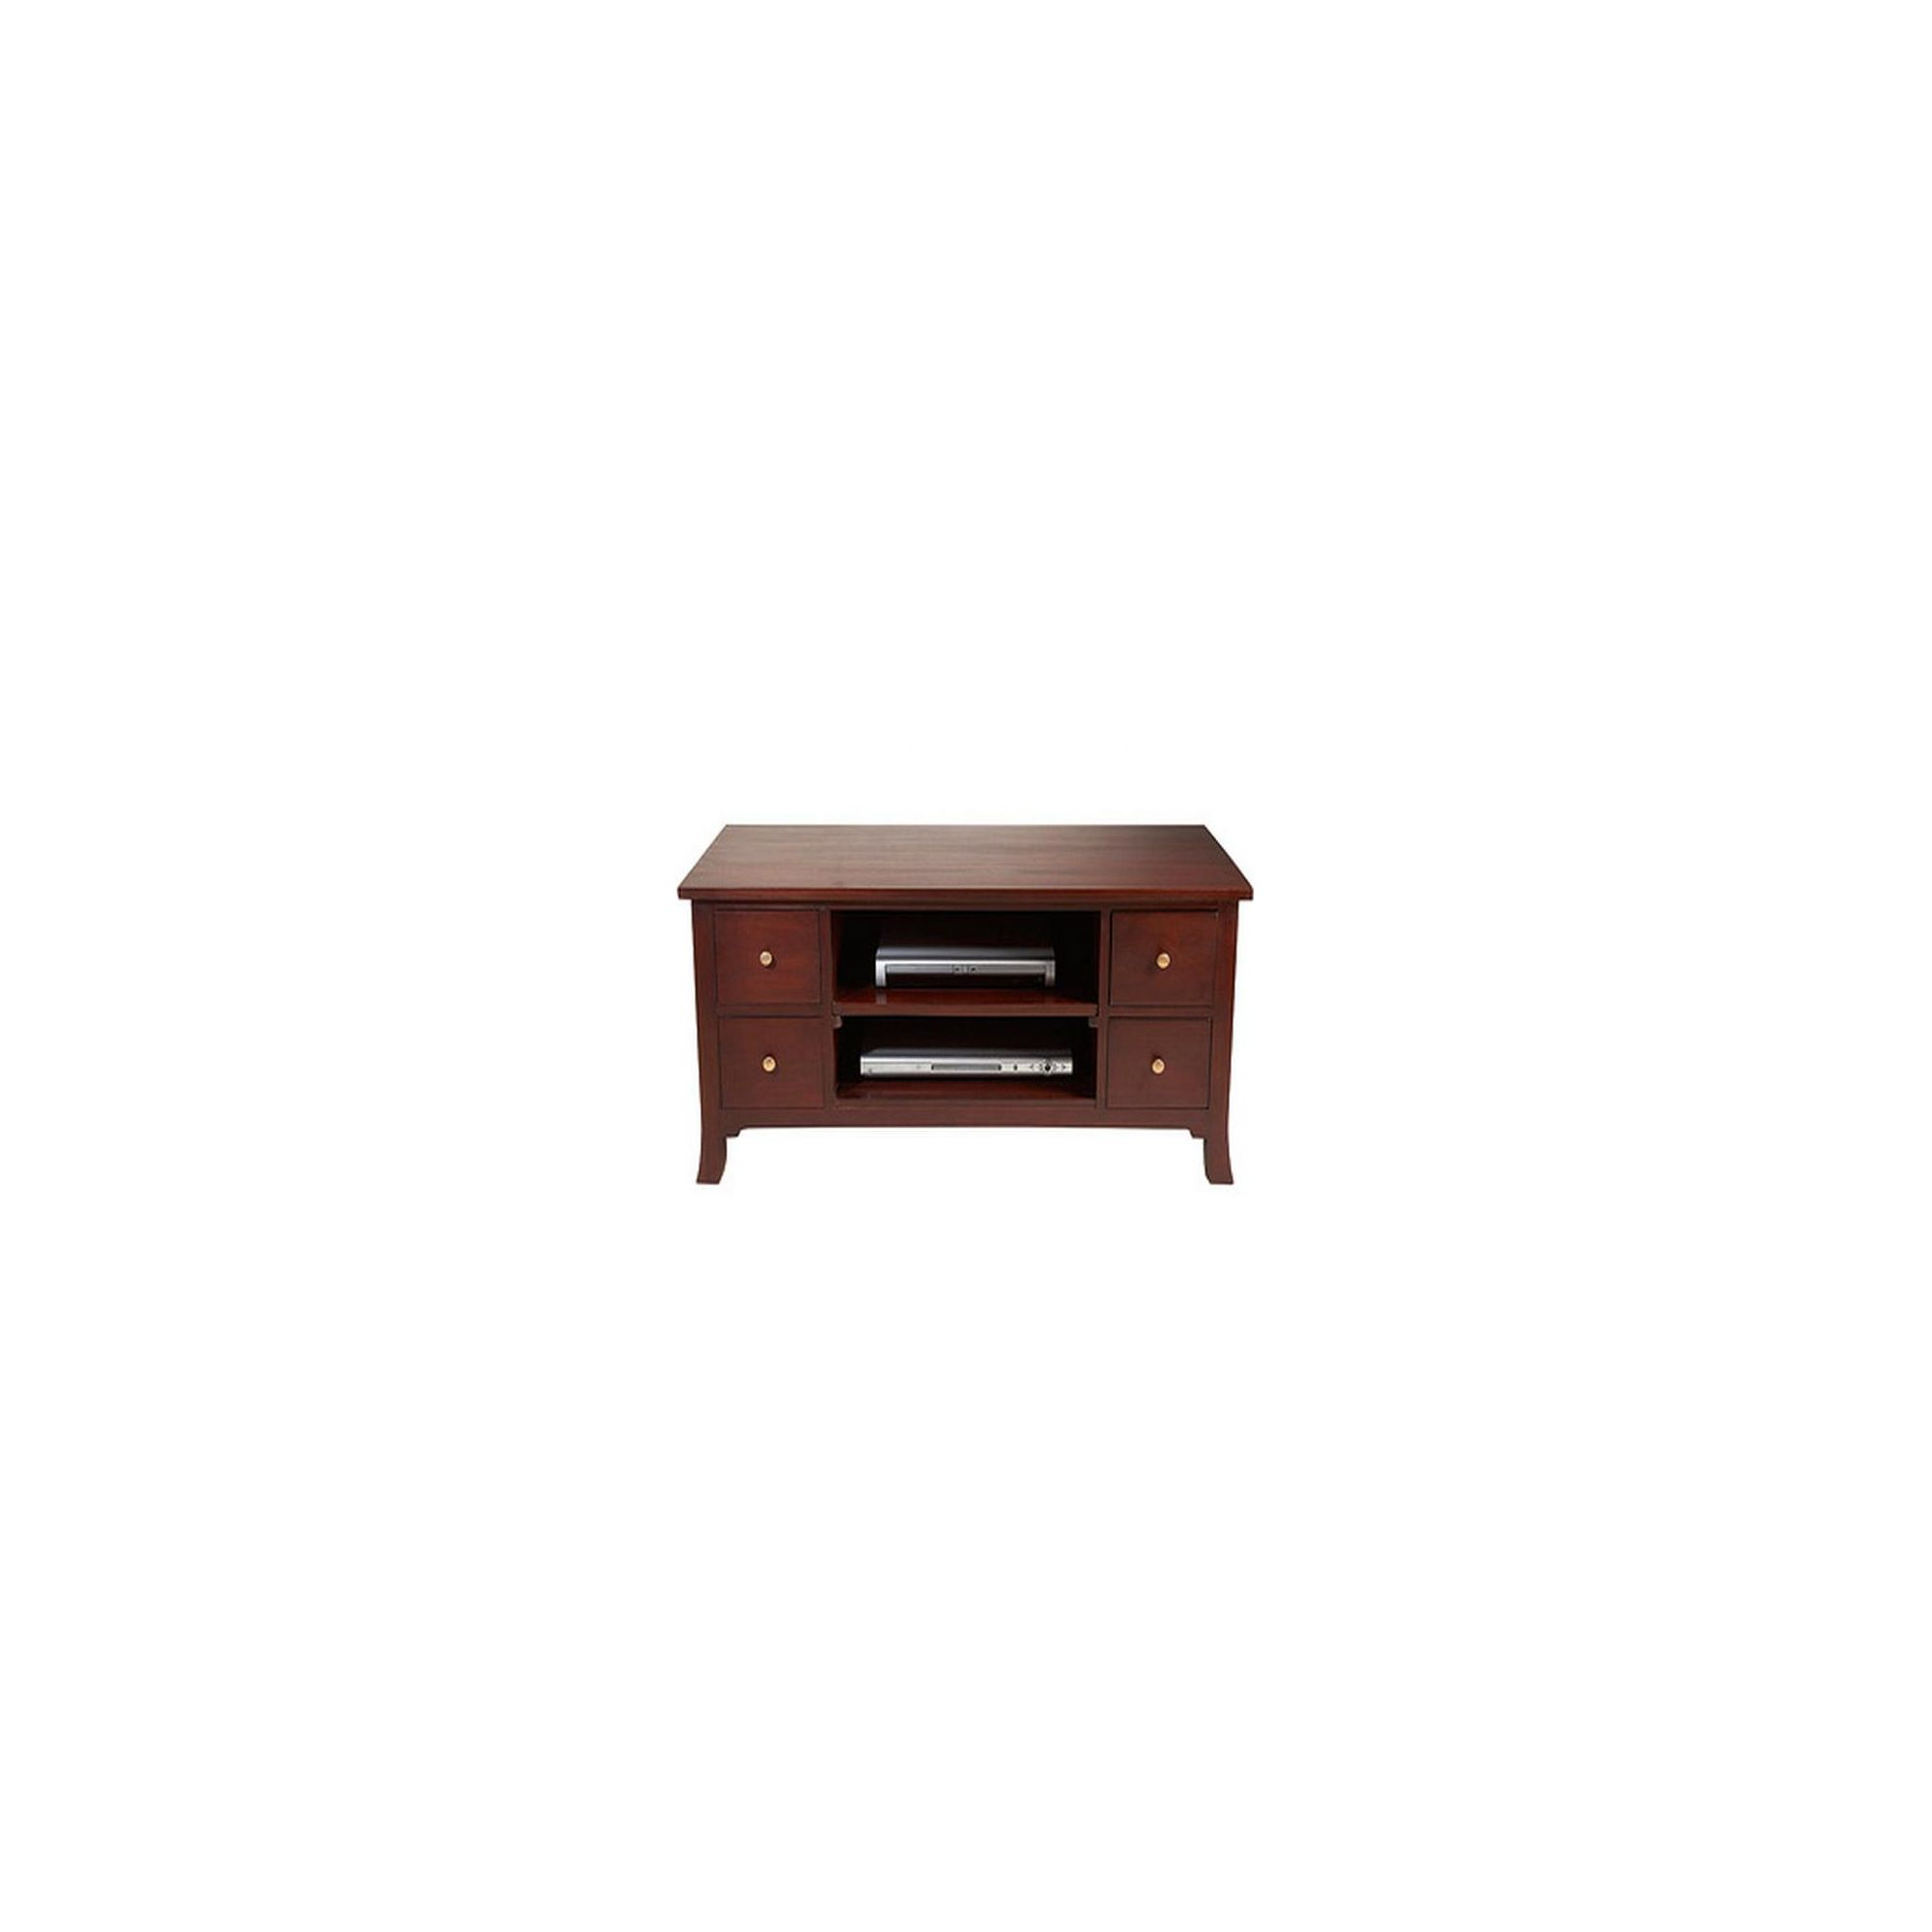 Lock stock and barrel Mahogany Orchard Straight TV Stand in Mahogany at Tesco Direct